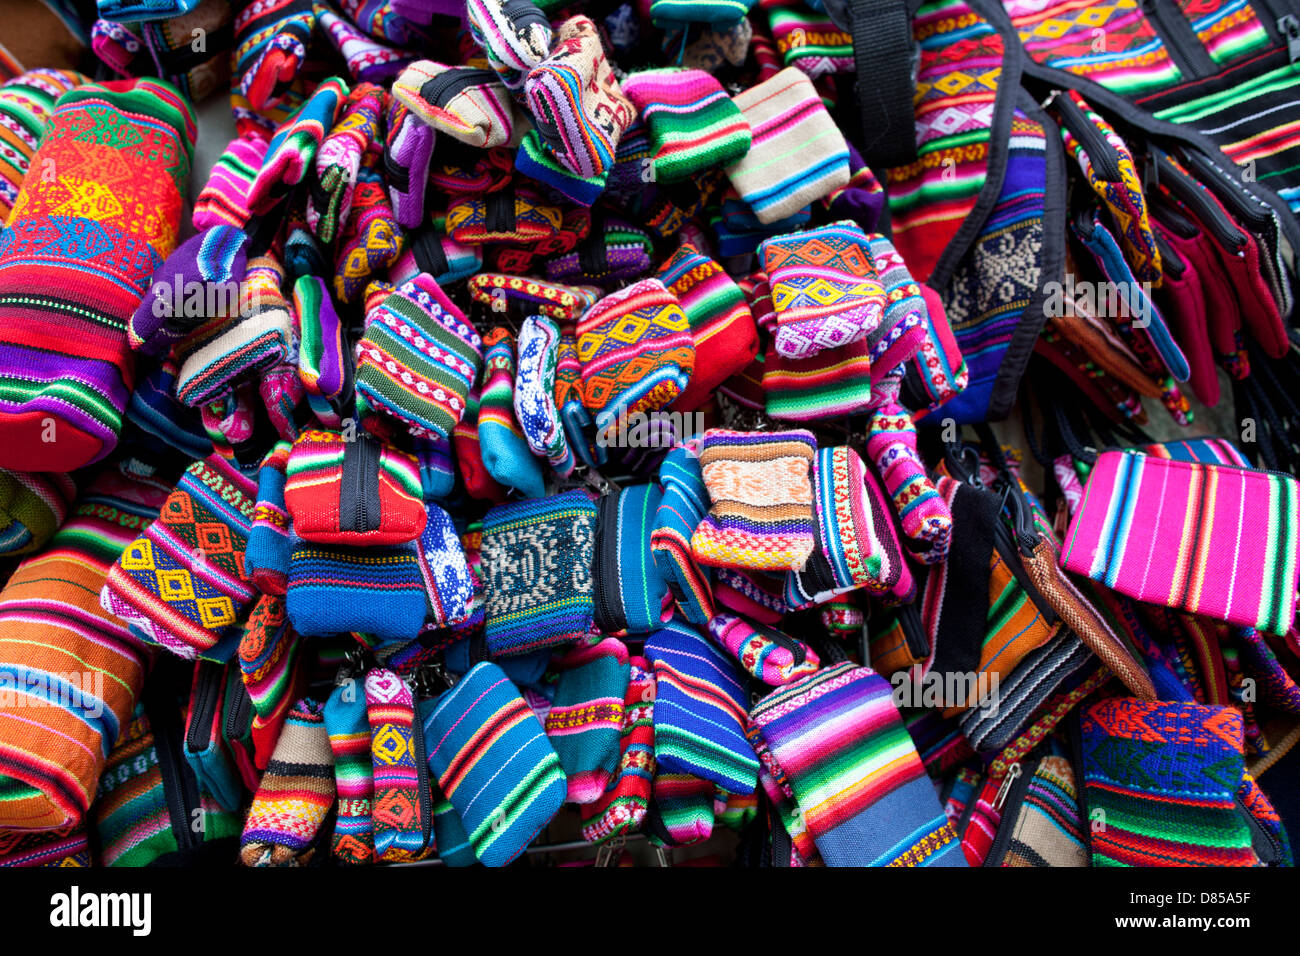 Textiles on sale in a market in Bolivia close to La Paz - Stock Image